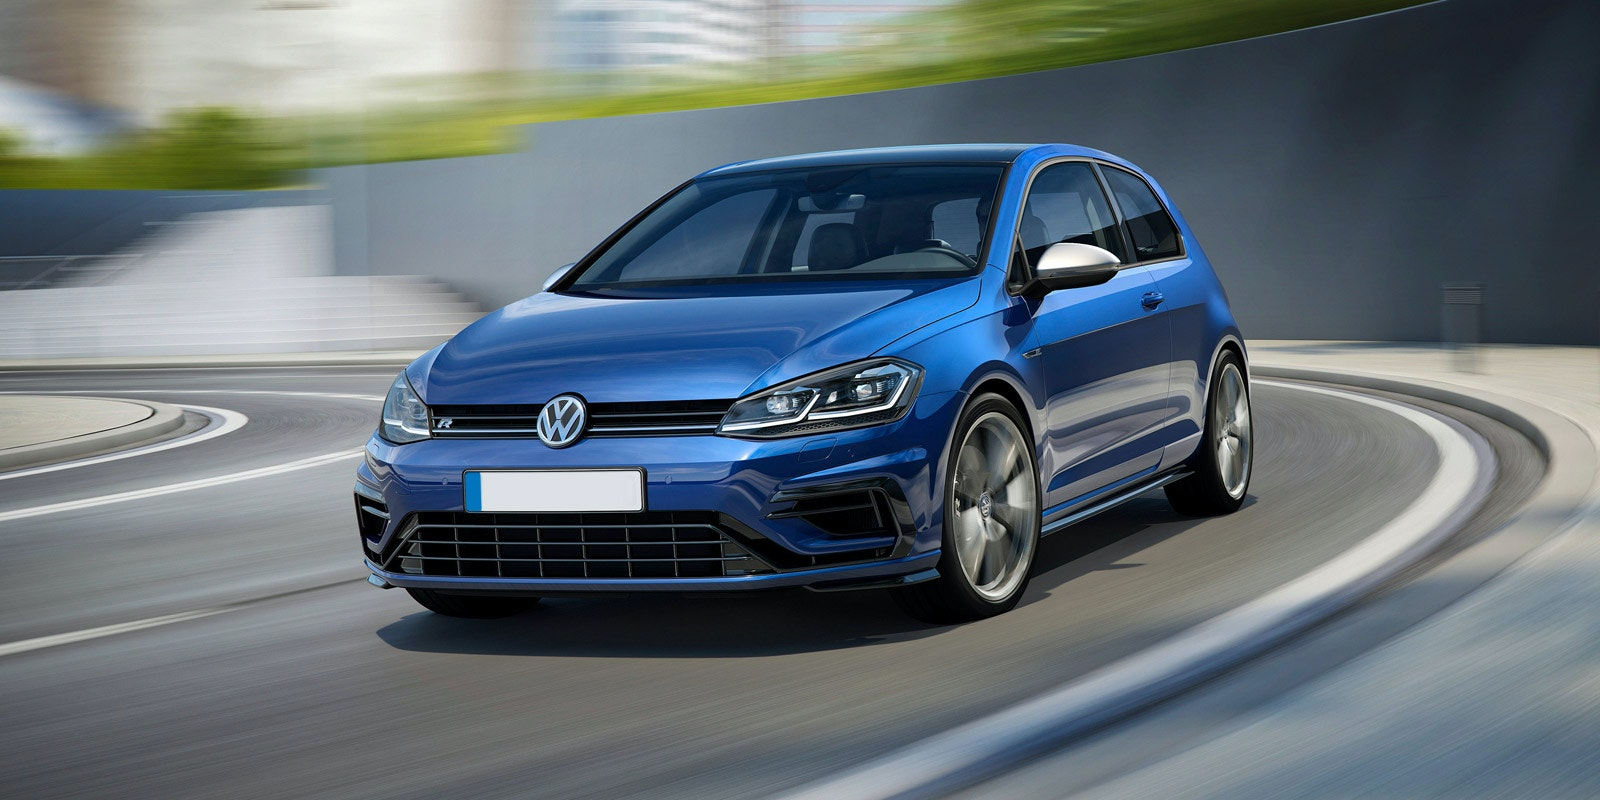 Vw golf r lead.jpg?ixlib=rb 1.1